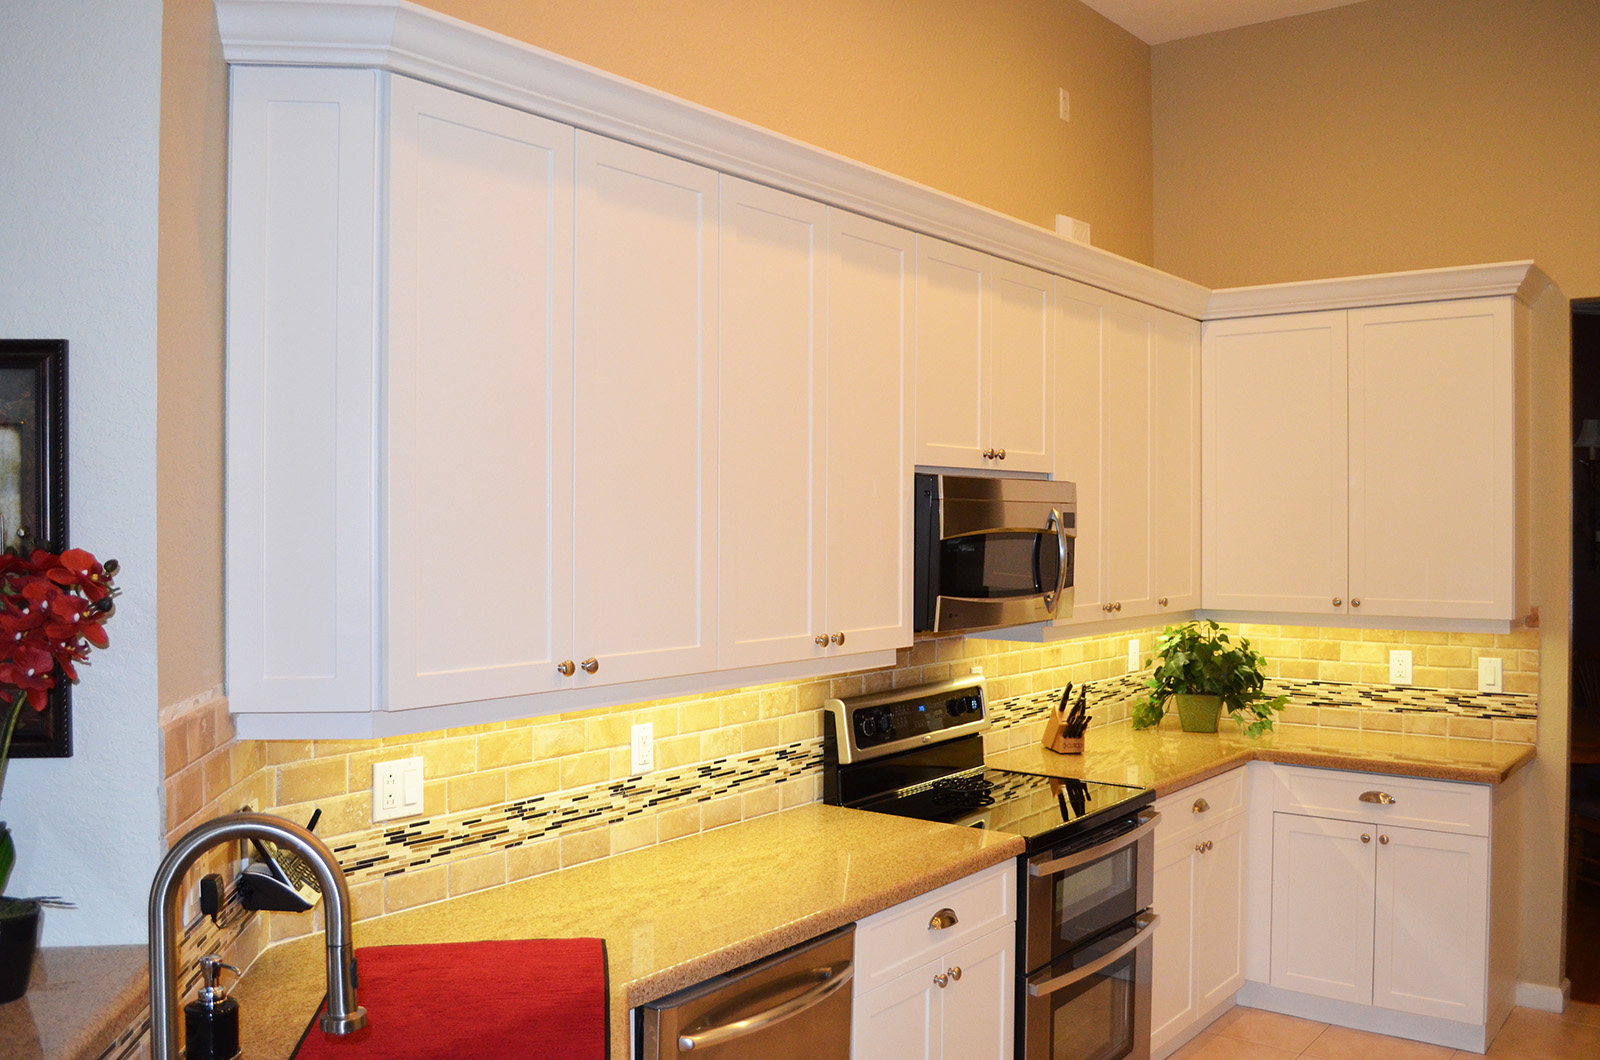 We have completed hundreds of projects, kitchens and bathrooms renovations and remodeling in South Florida, you can be rest assured that your renovation ...